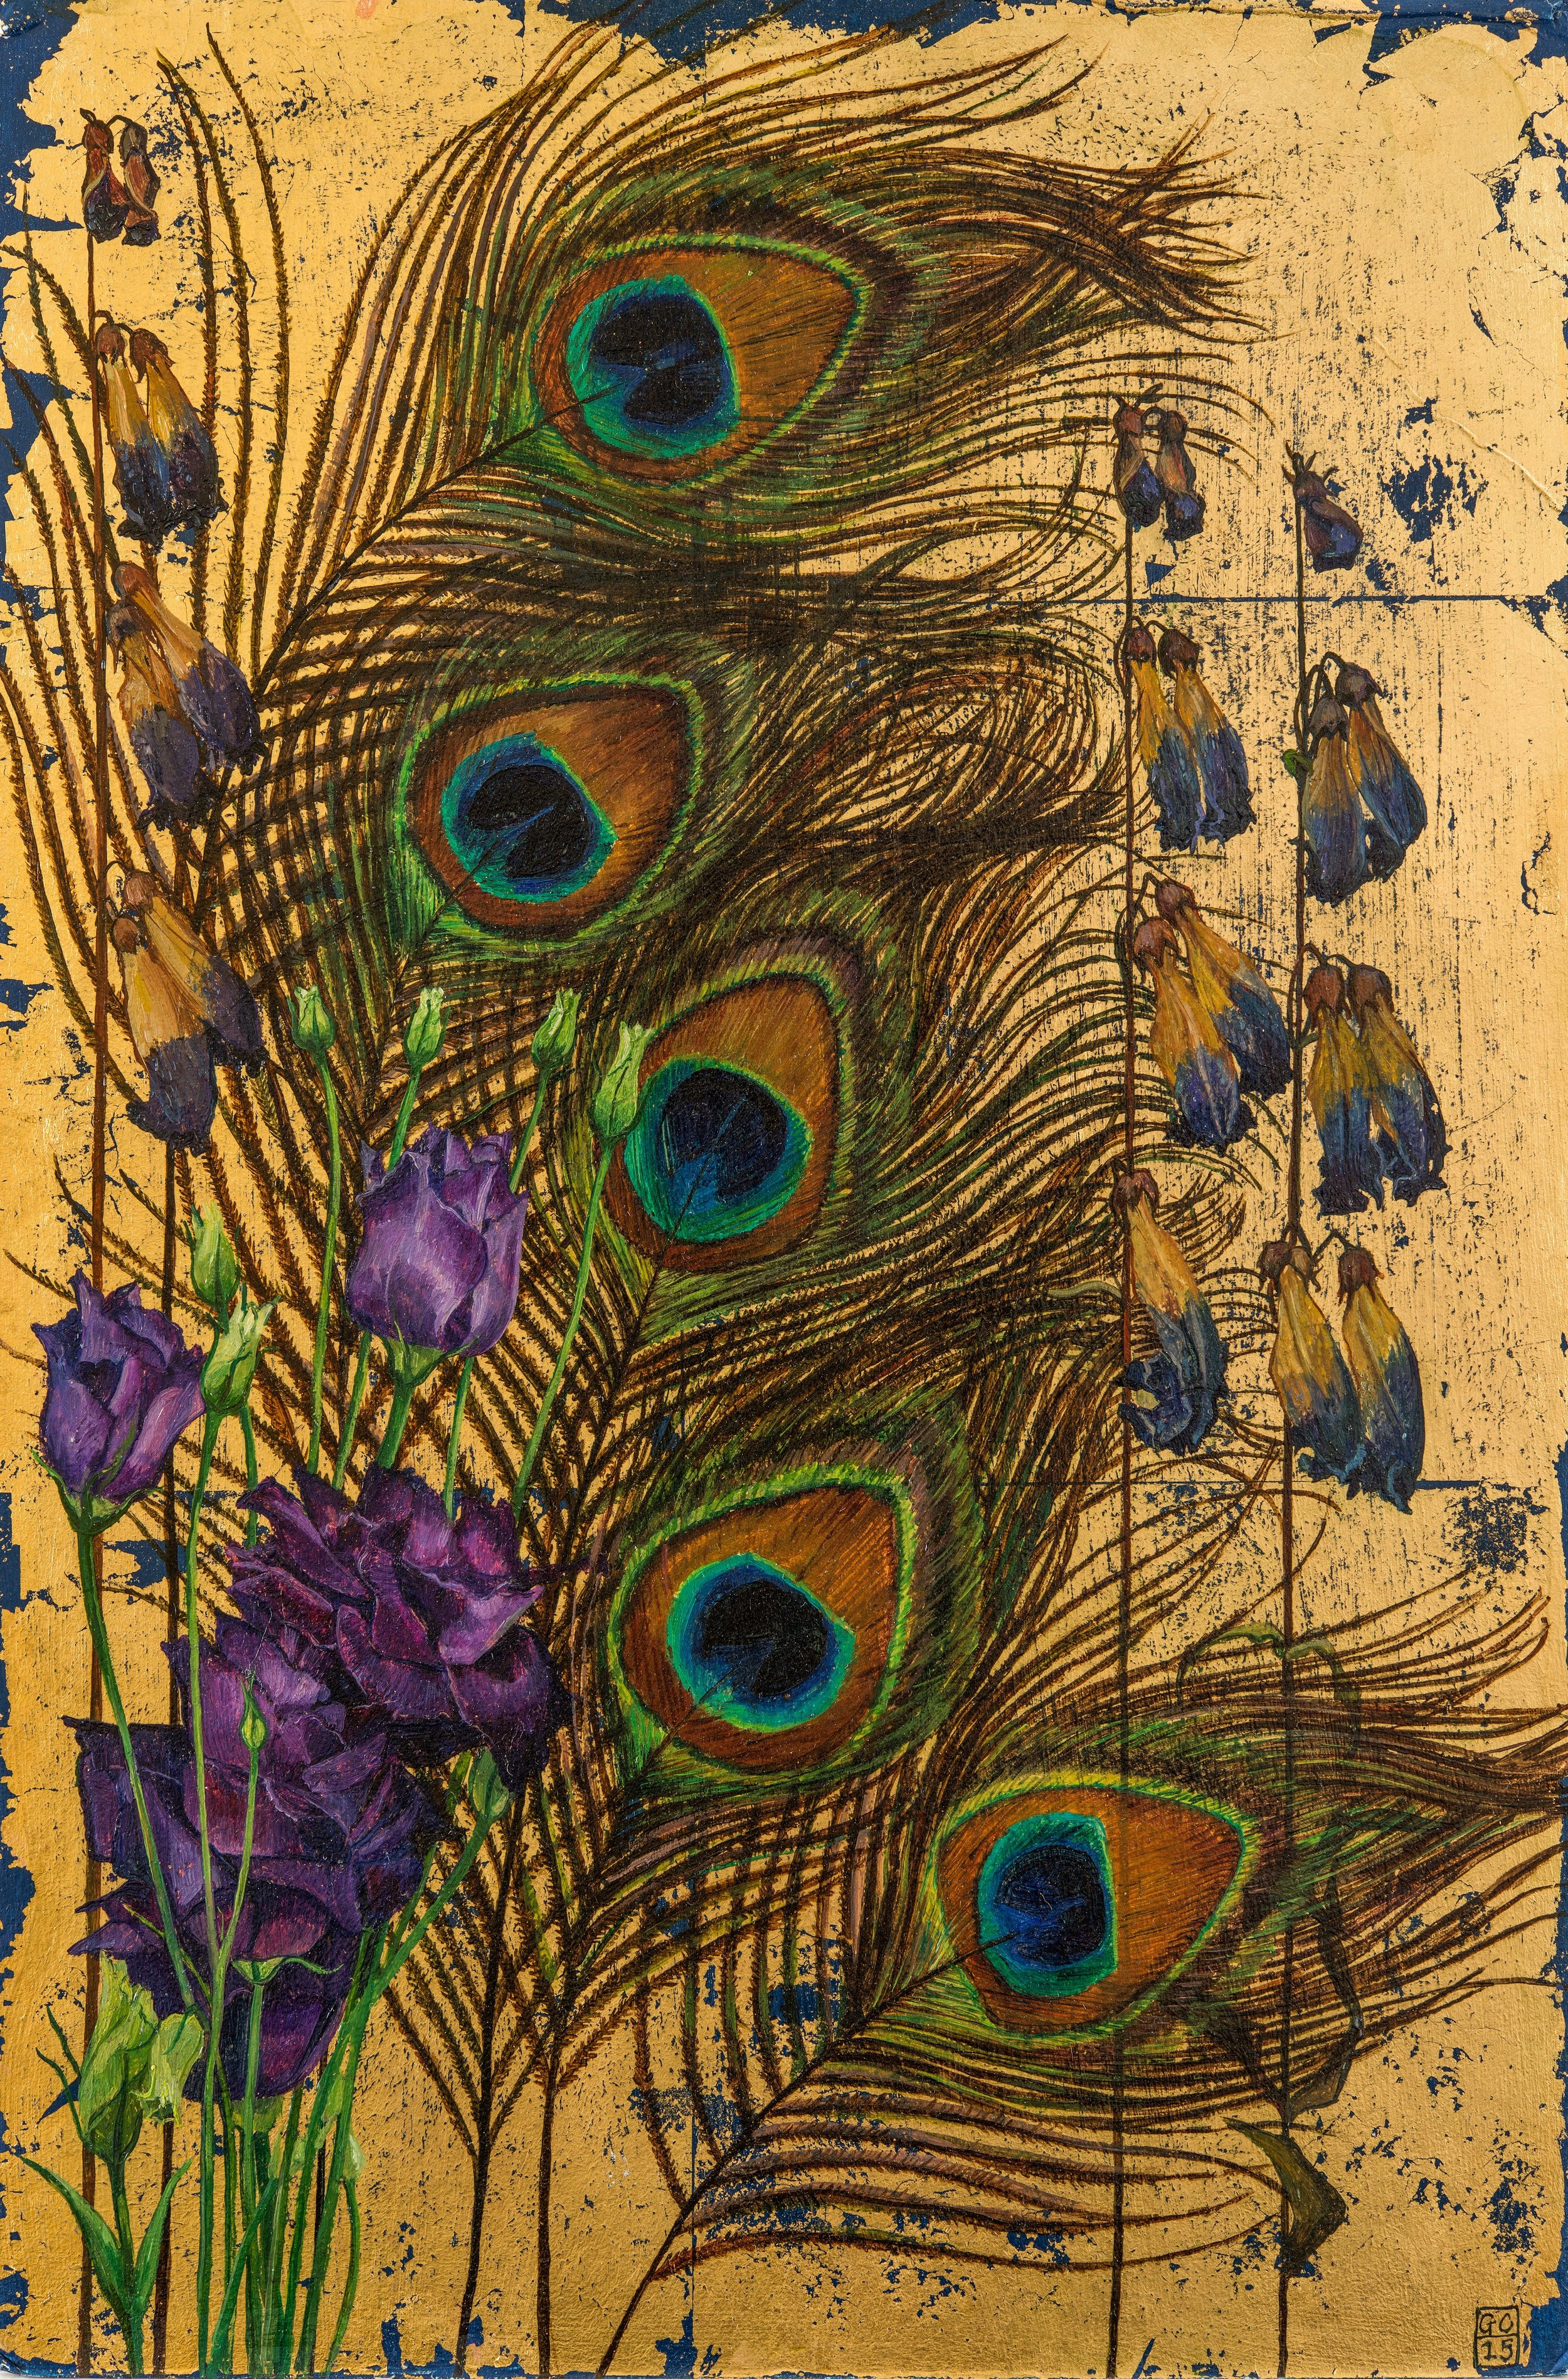 'Peacock Feathers', Oil and Metal Leaf on Card, 25cm x 19cm, 2015, SOLD